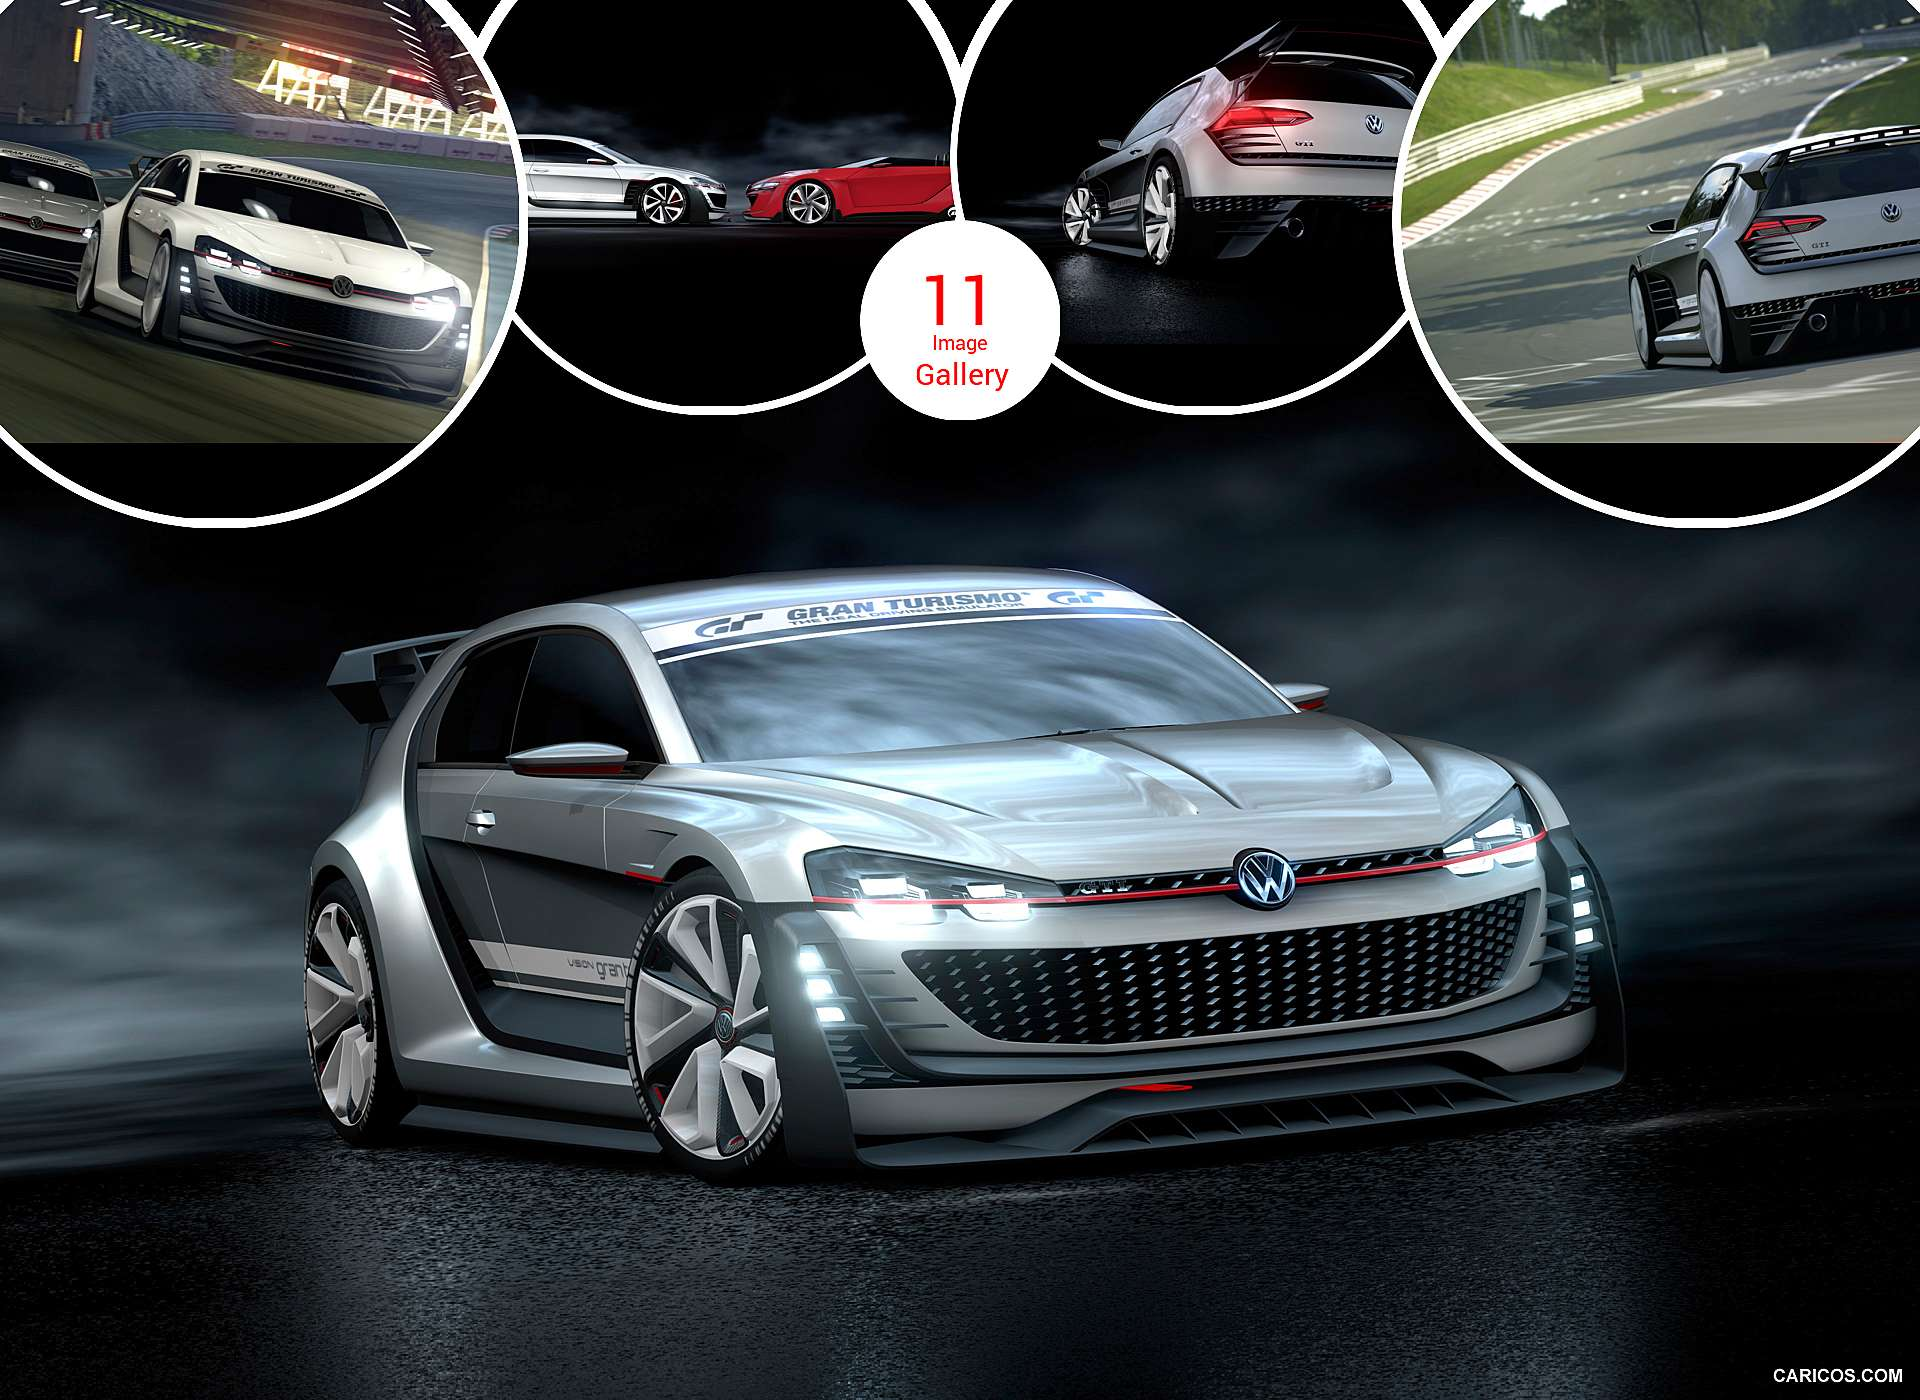 2015 VW GTI Supersport Vision Gran Turismo Concept